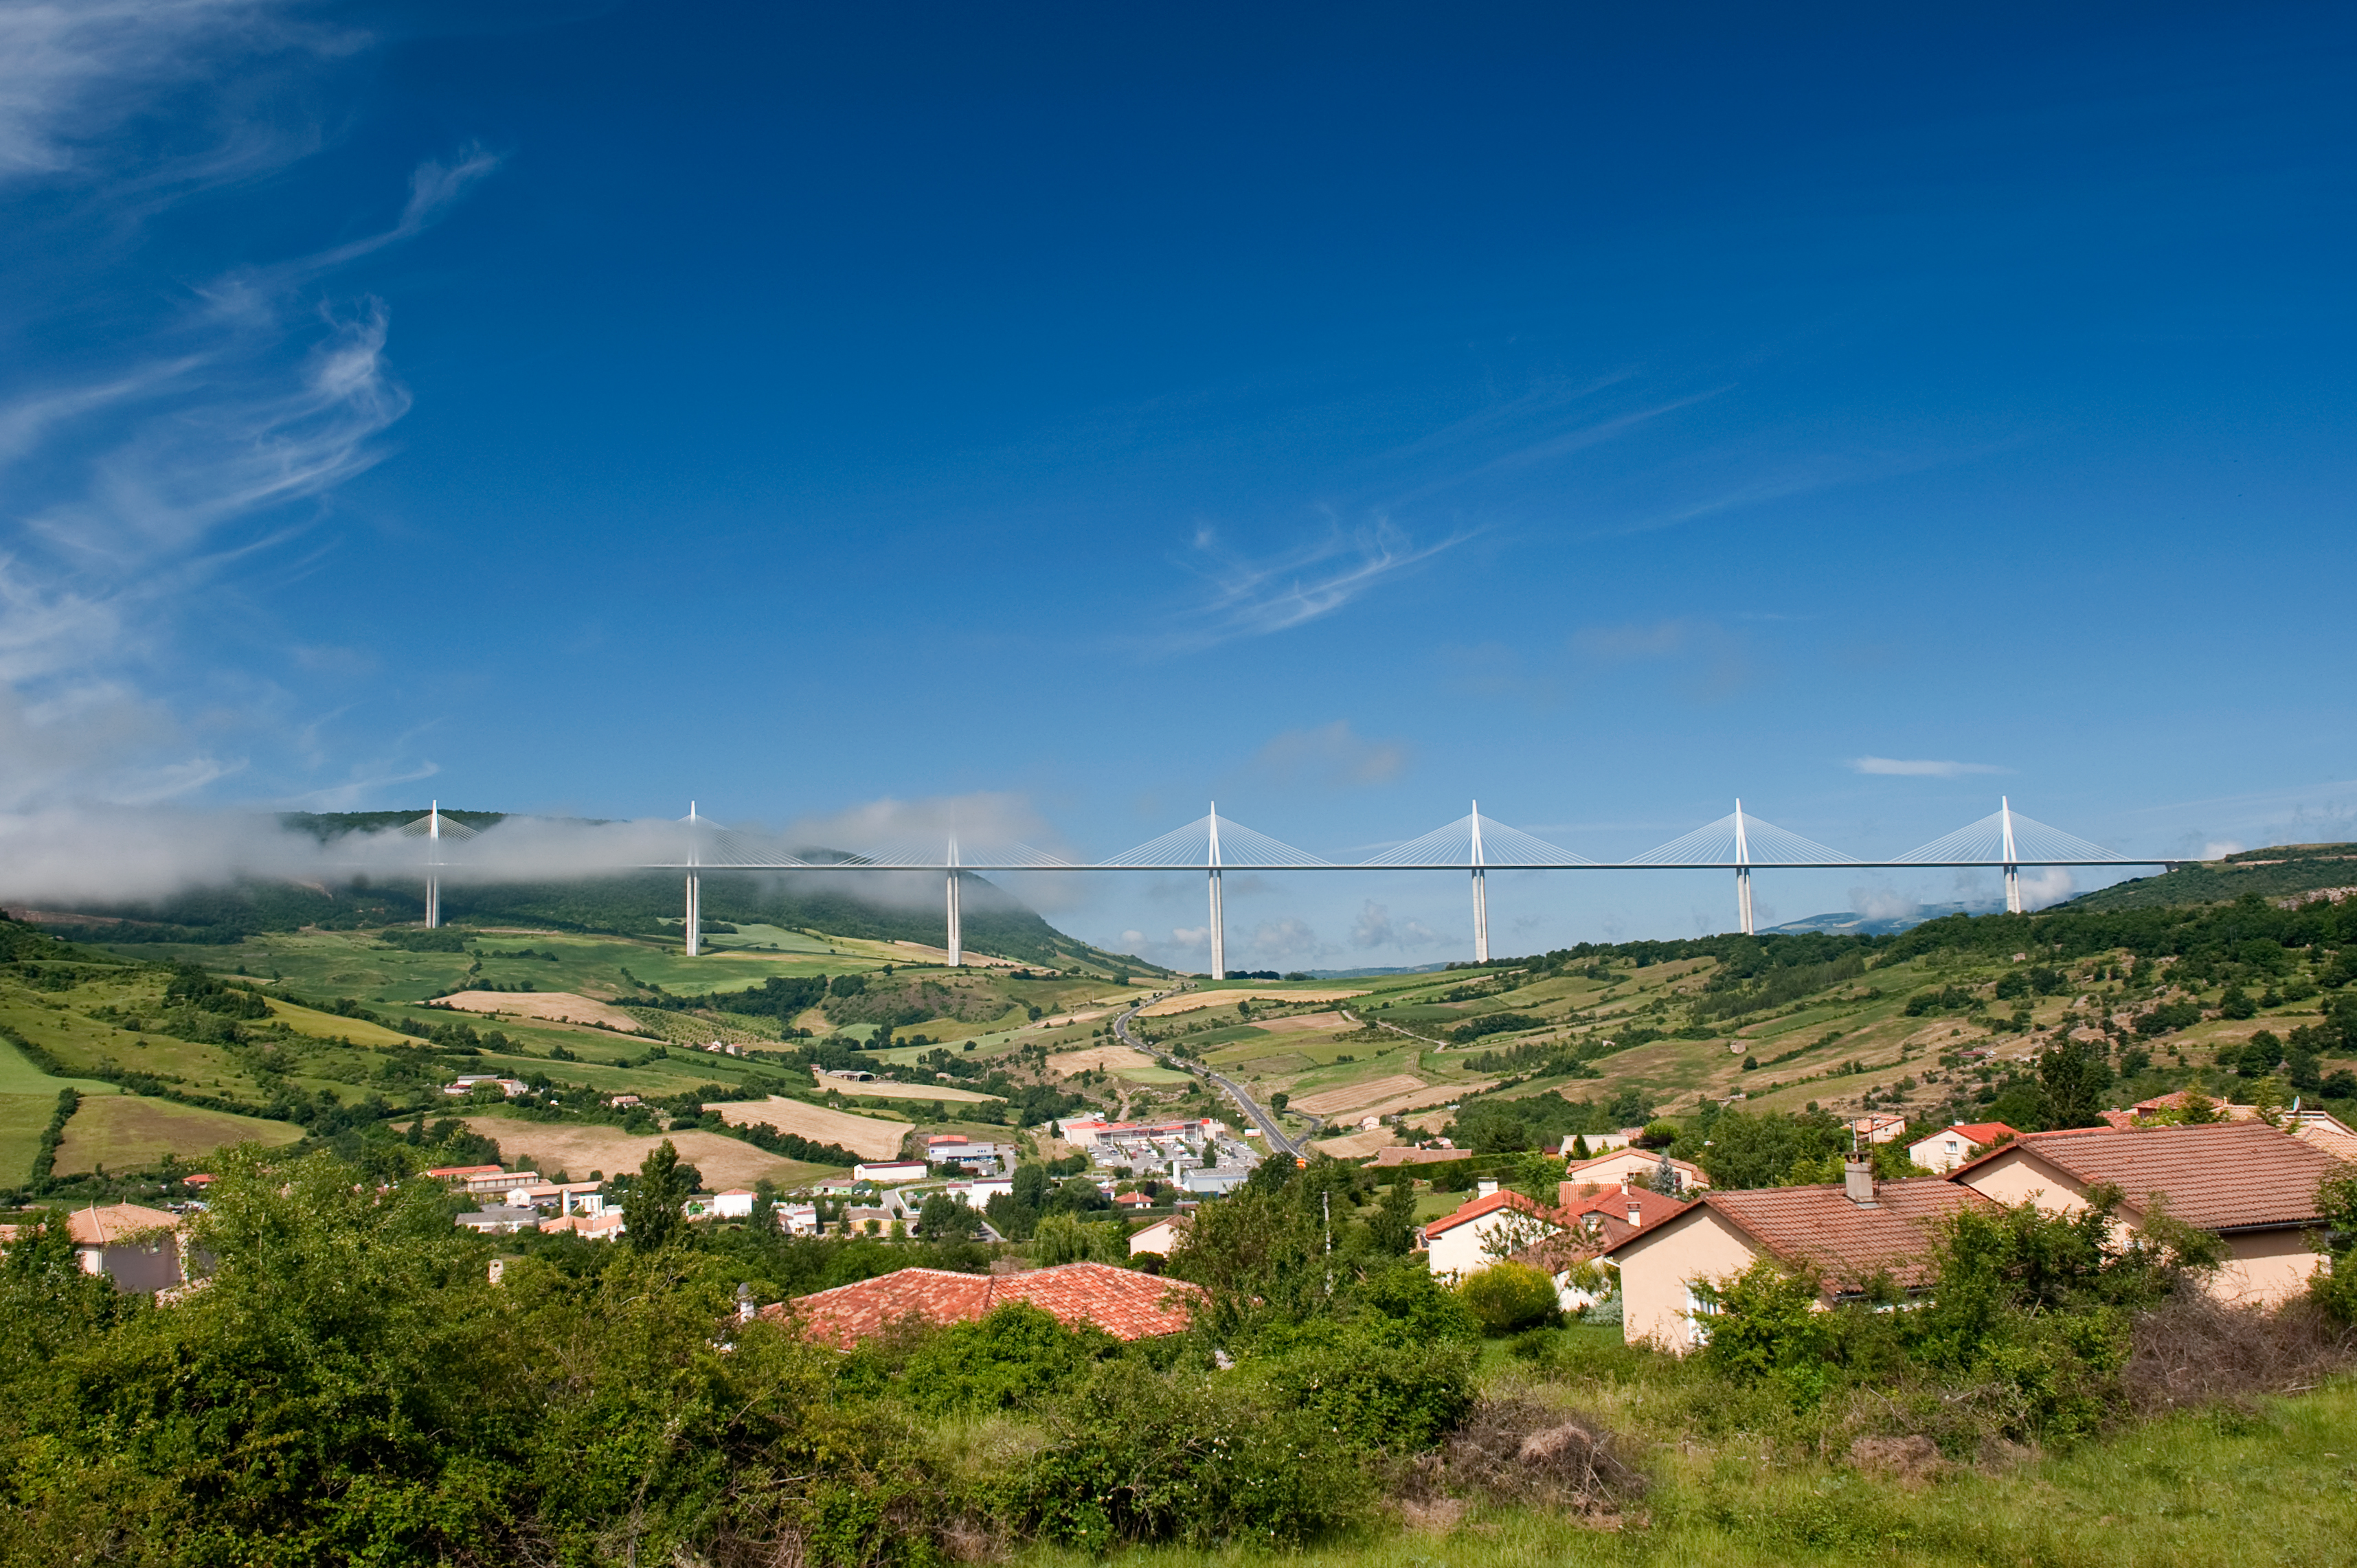 Millau Viaduct Wikipedia